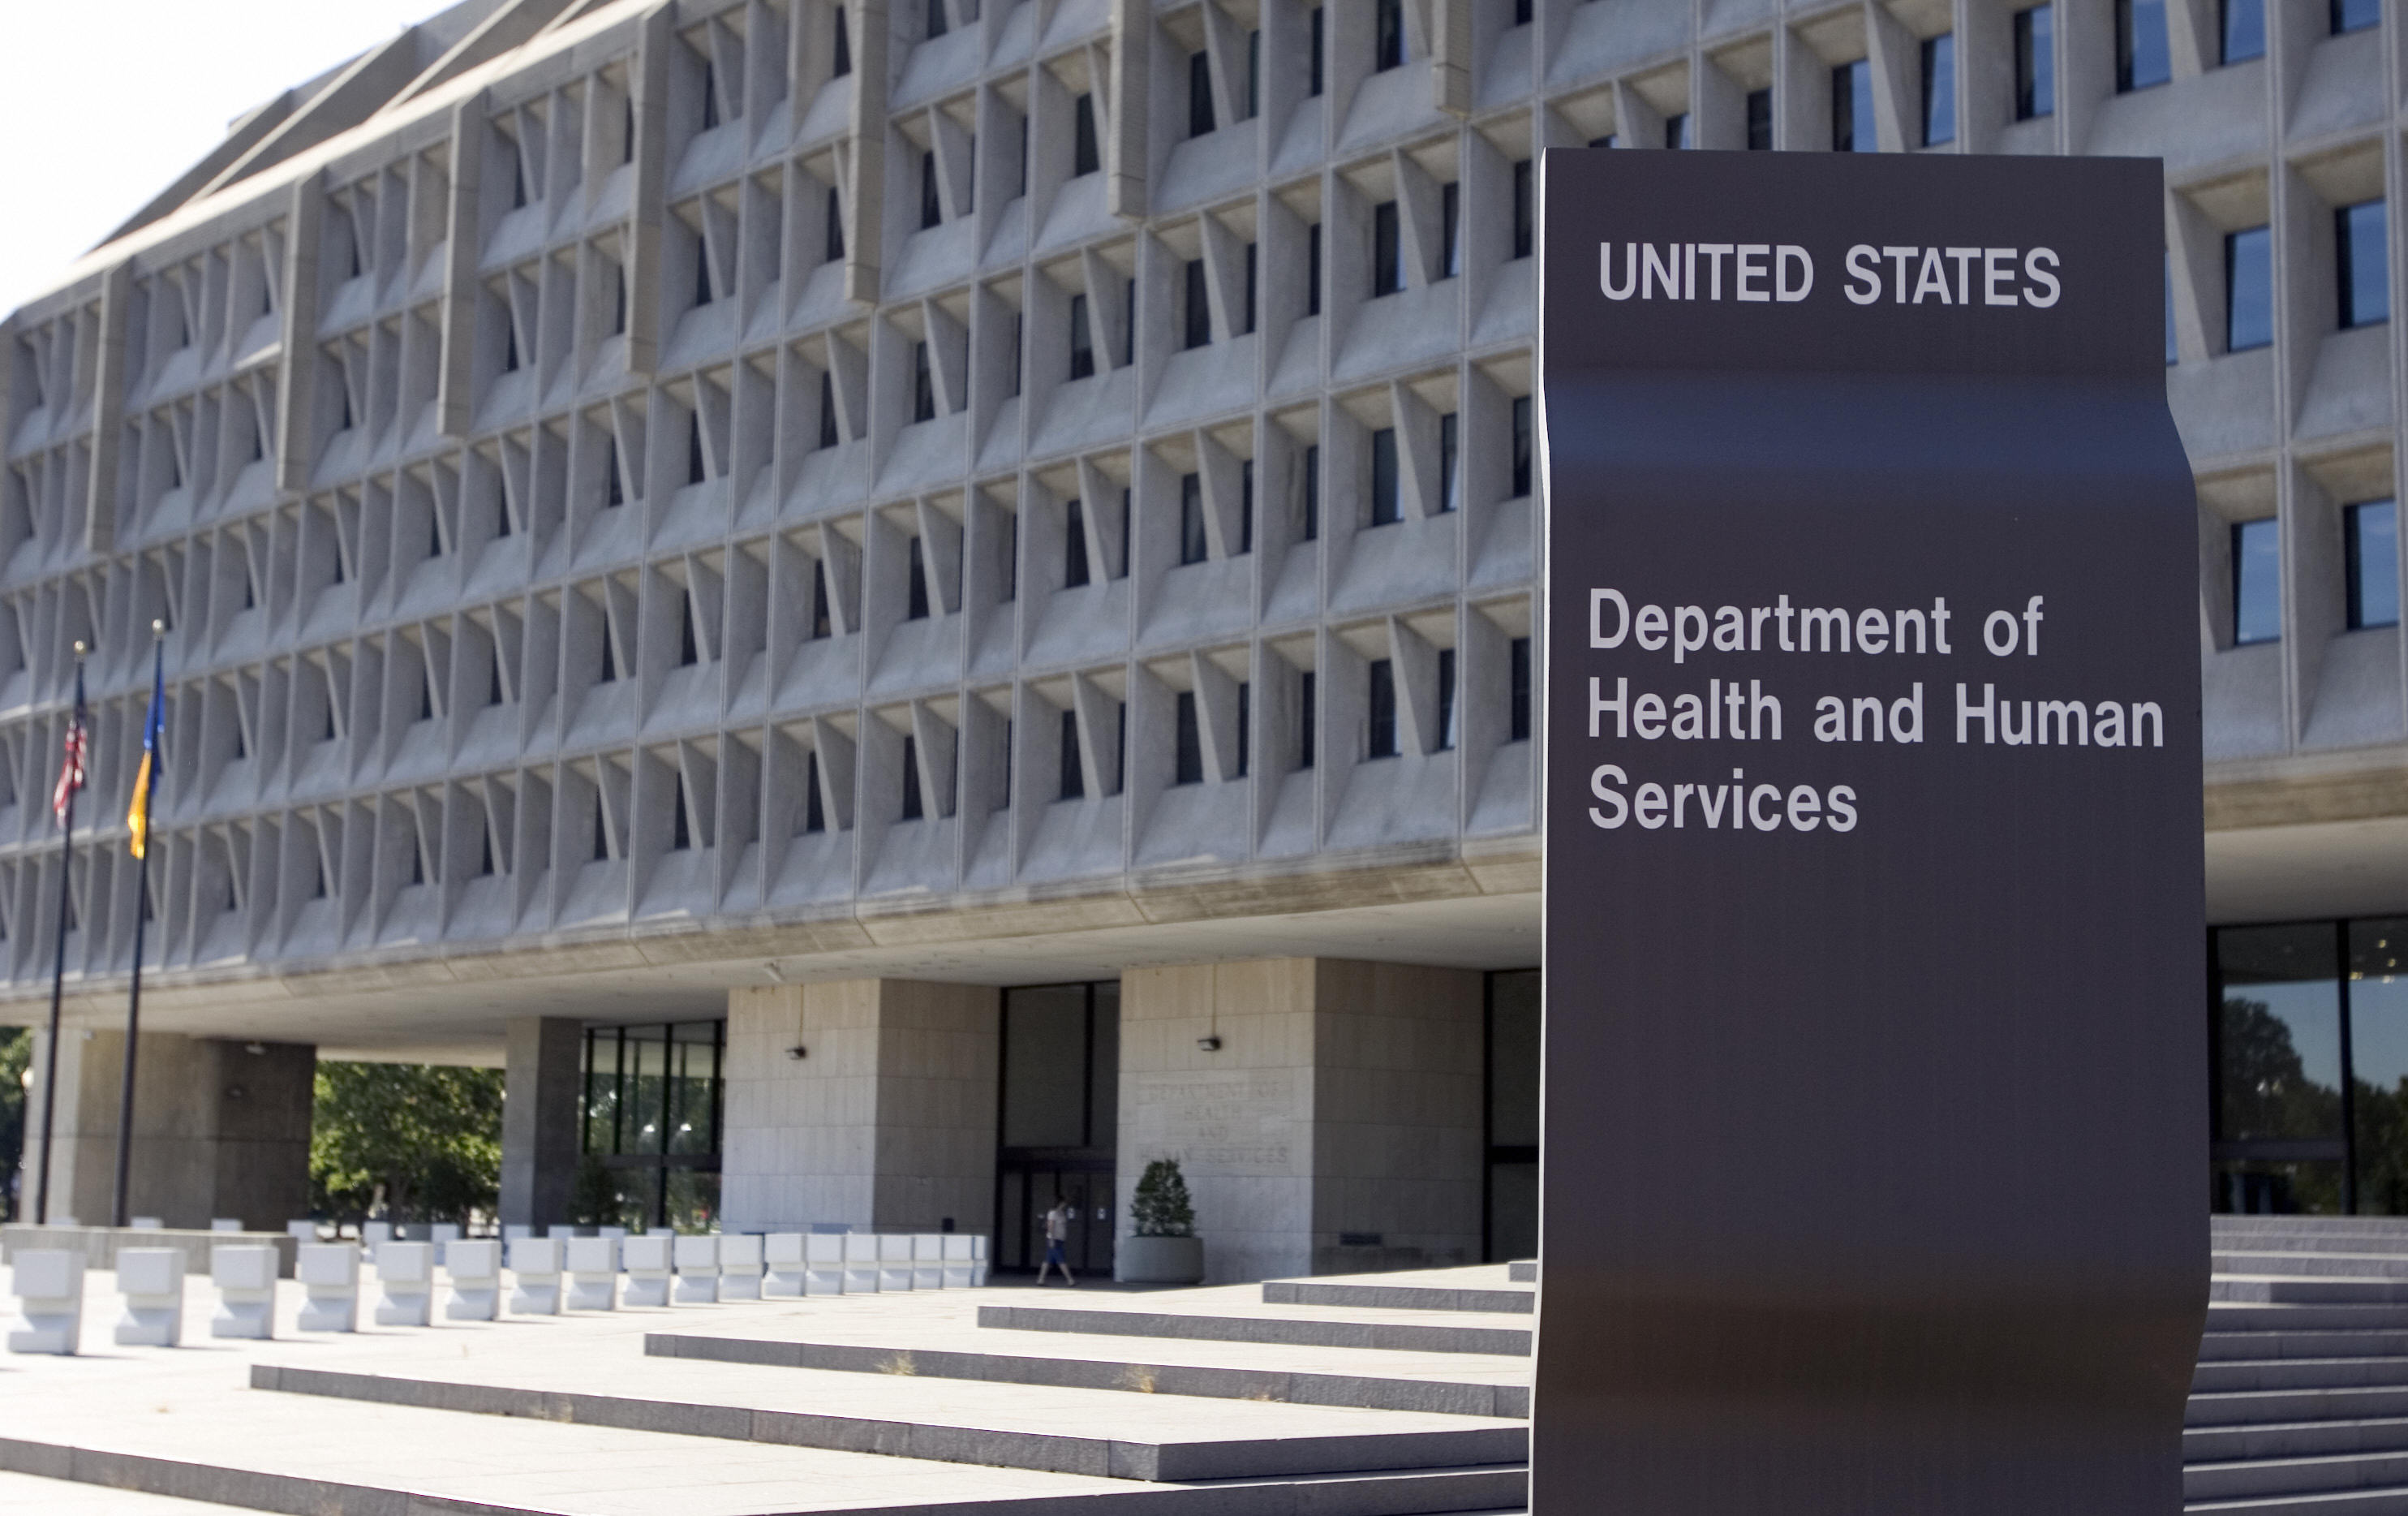 The US Department of Health and Human Services building is shown in Washington, DC, 21 July 2007. (SAUL LOEB/AFP/Getty Images)